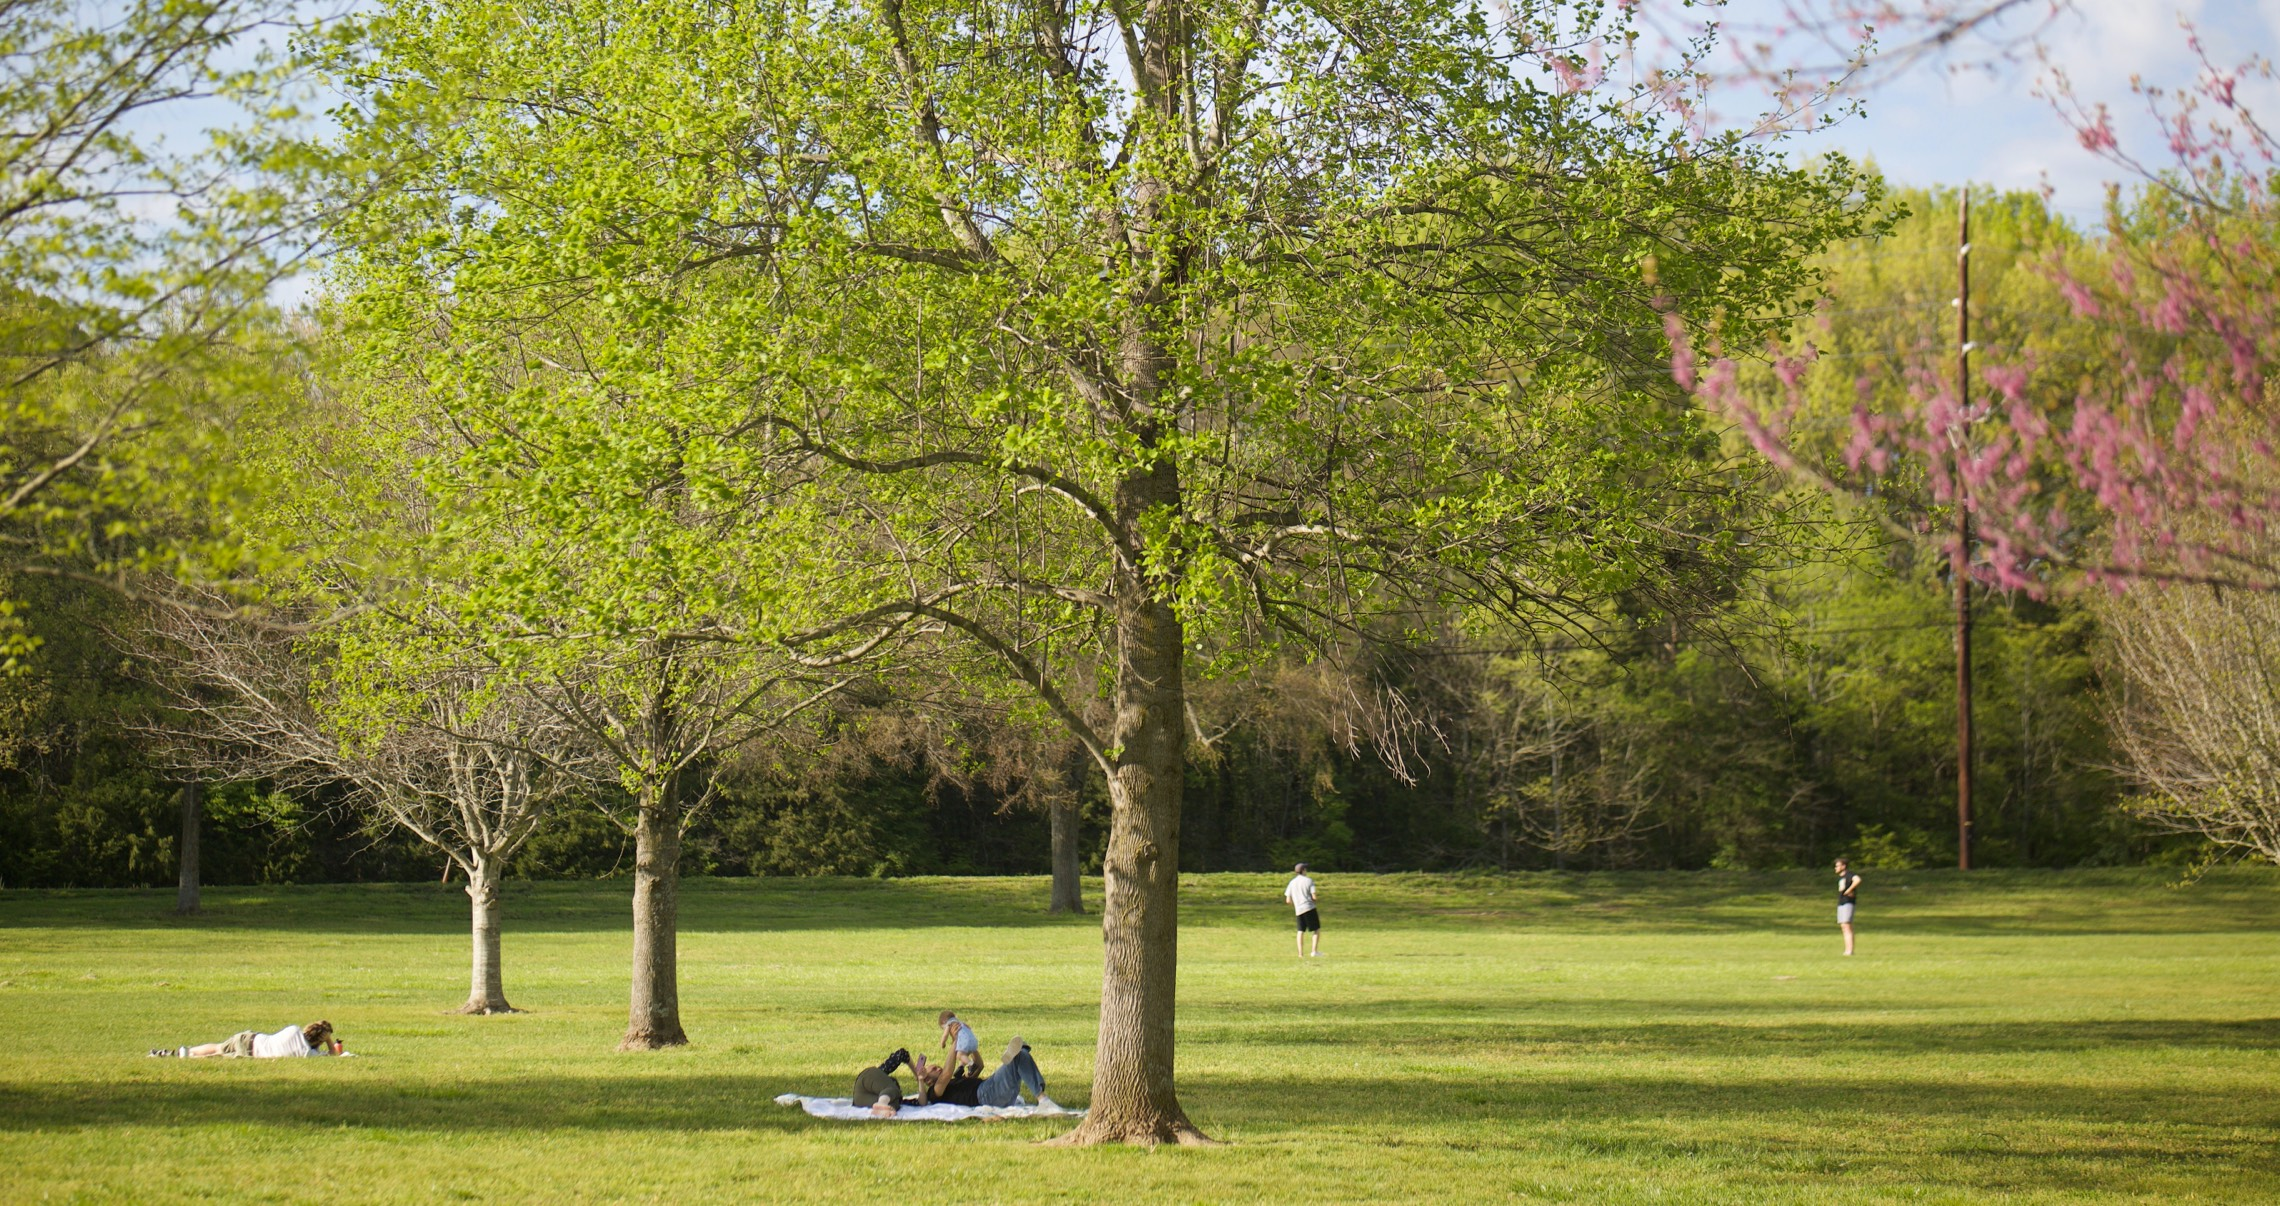 People resting under the trees in a park